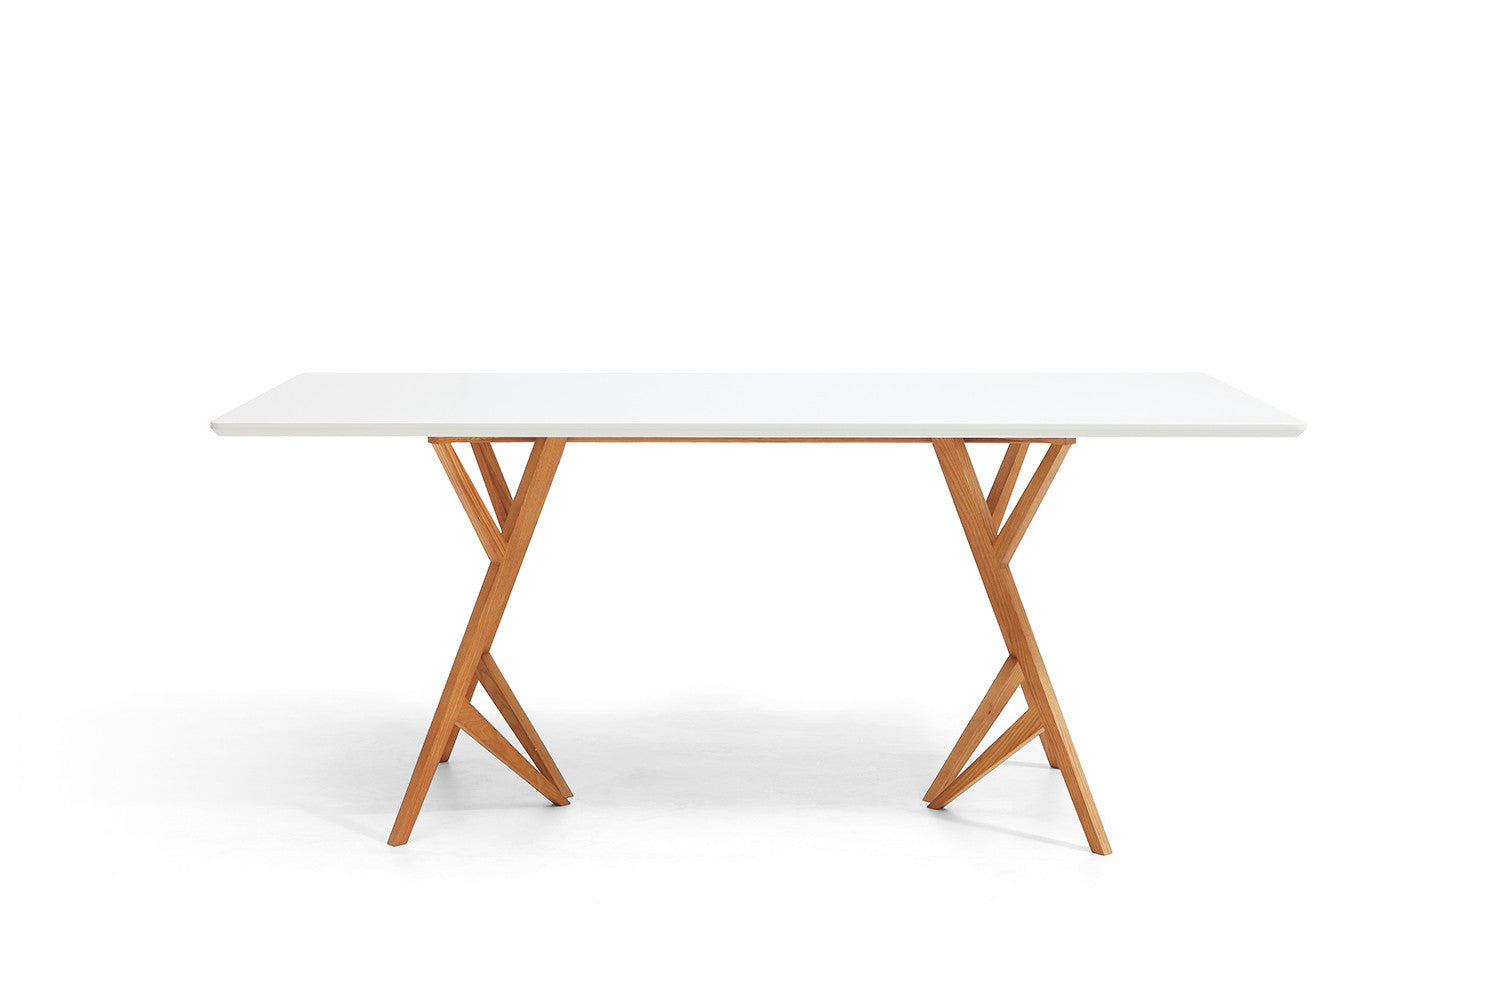 Table de salle manger design scandinave vispa dewarens for Table salle manger habitat